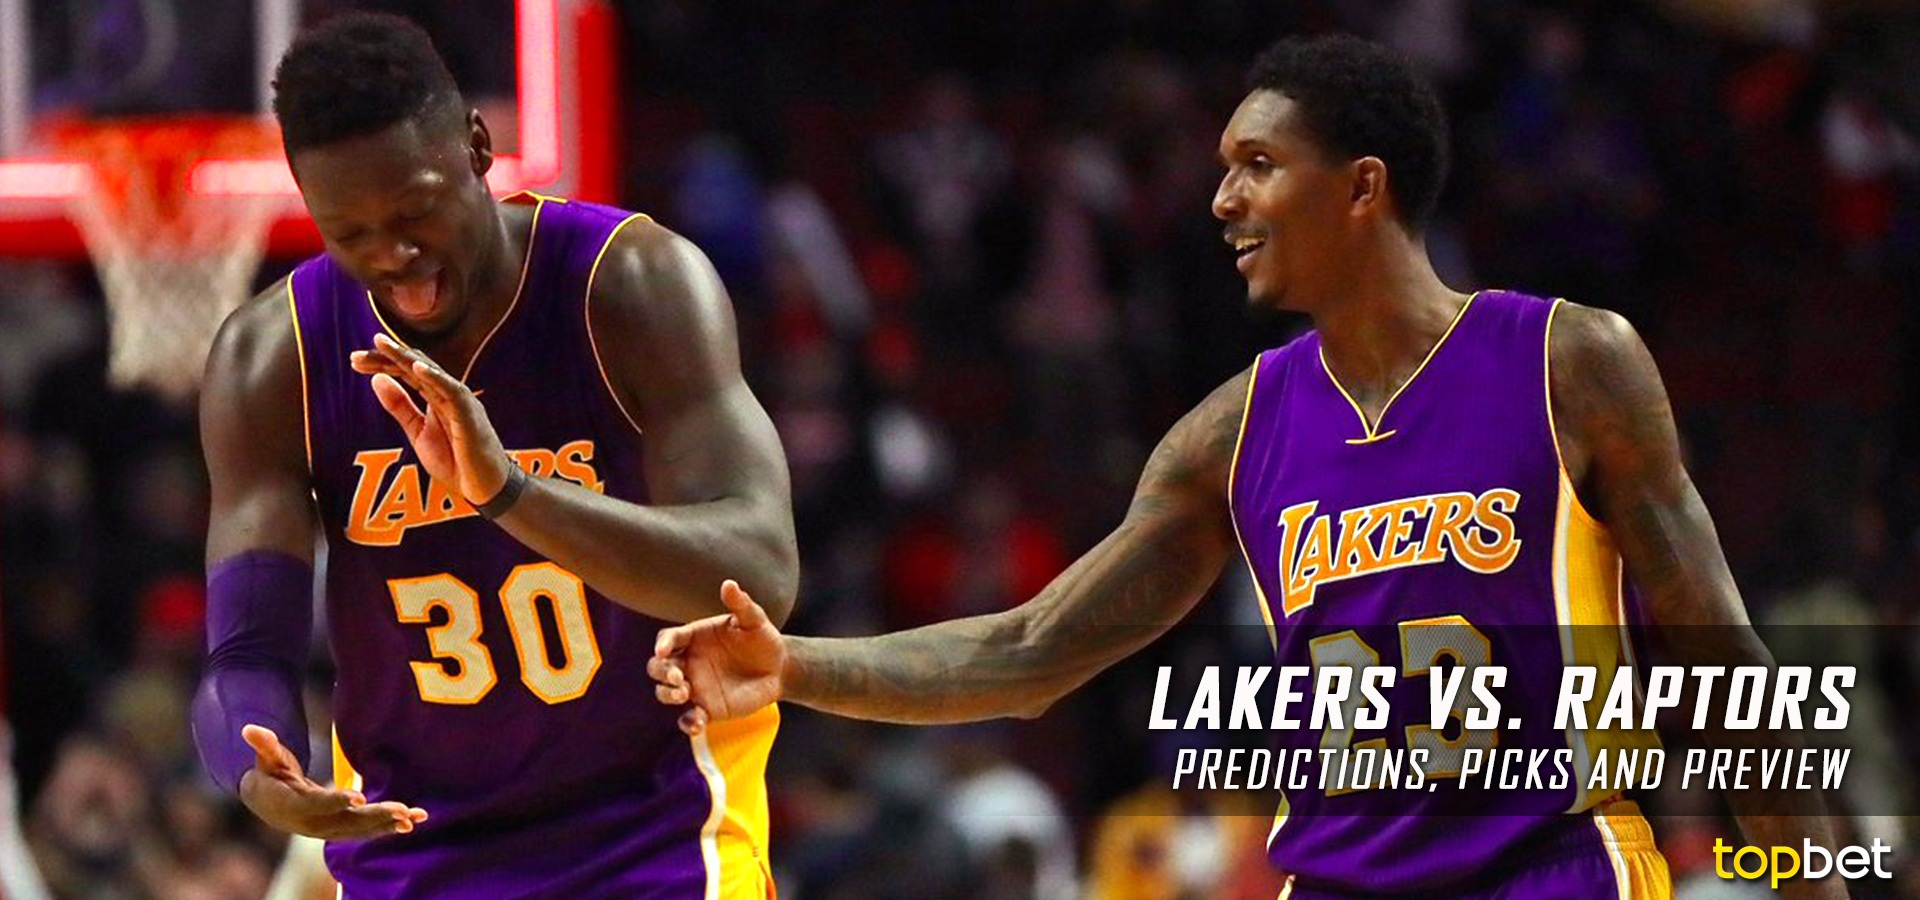 Lakers Vs Raptors Detail: Lakers Vs Raptors Predictions, Picks & Odds